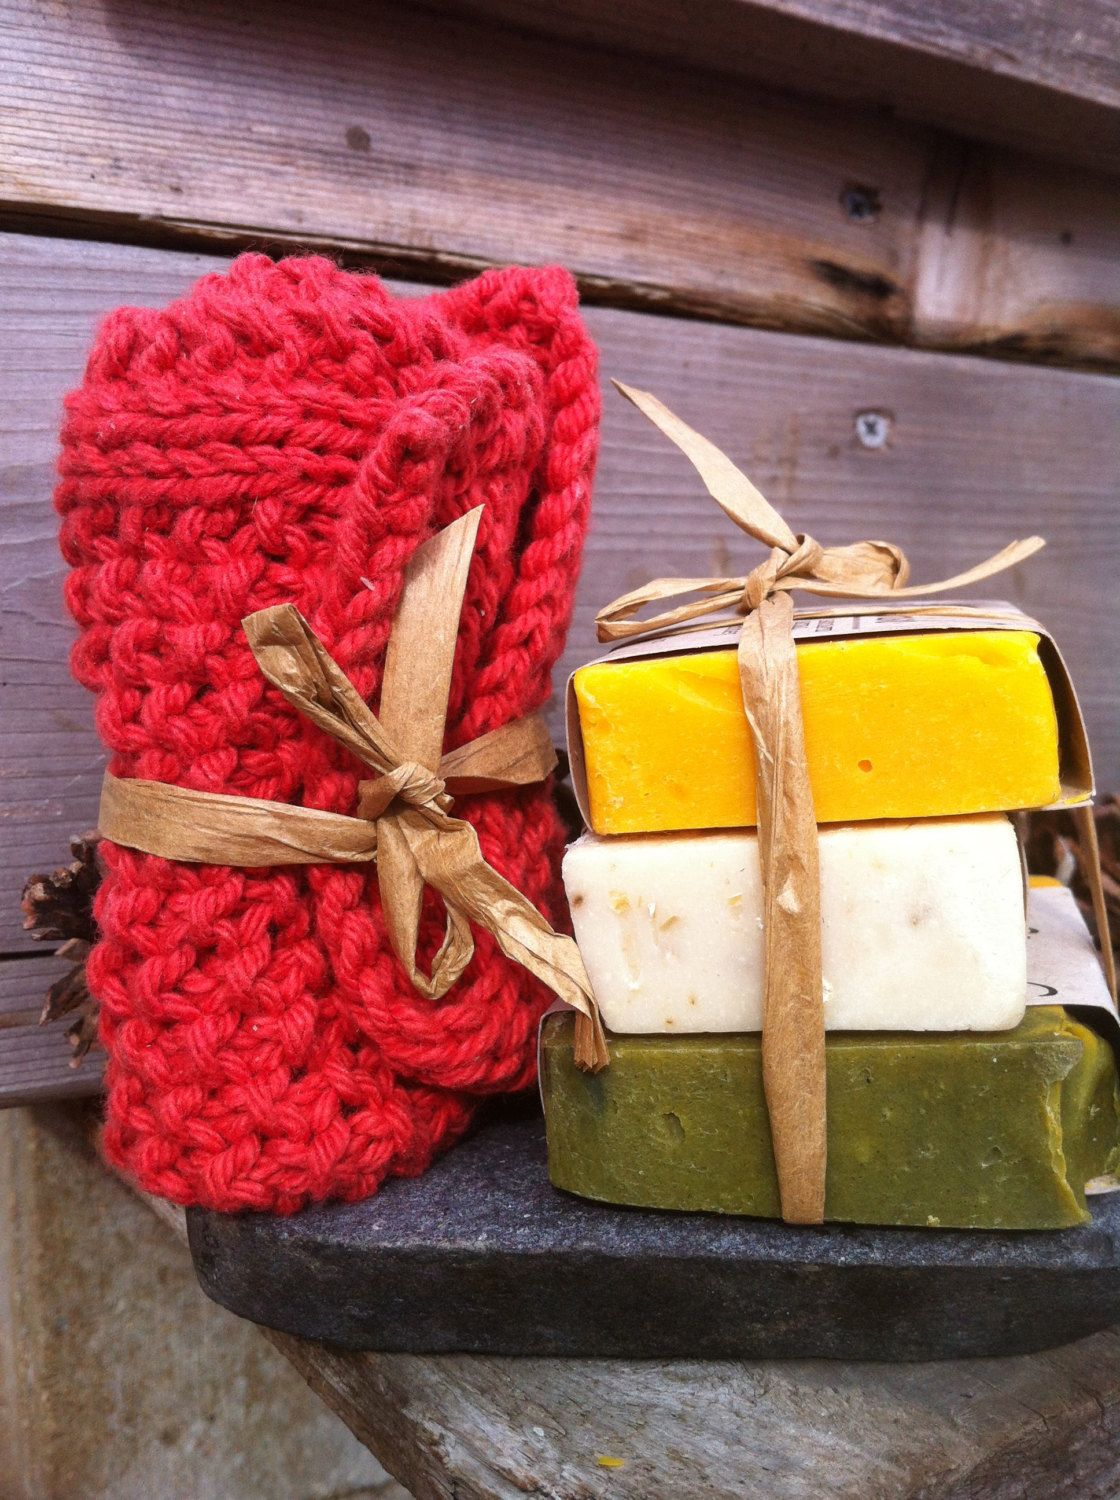 Natural Soap Three Sample Pack and Free Handmade Wash Cloth, Small Batch, Lavender and Bergamot Essential Oils, Exfoliating Soap, Oats Honey by FlourishSoaps on Etsy